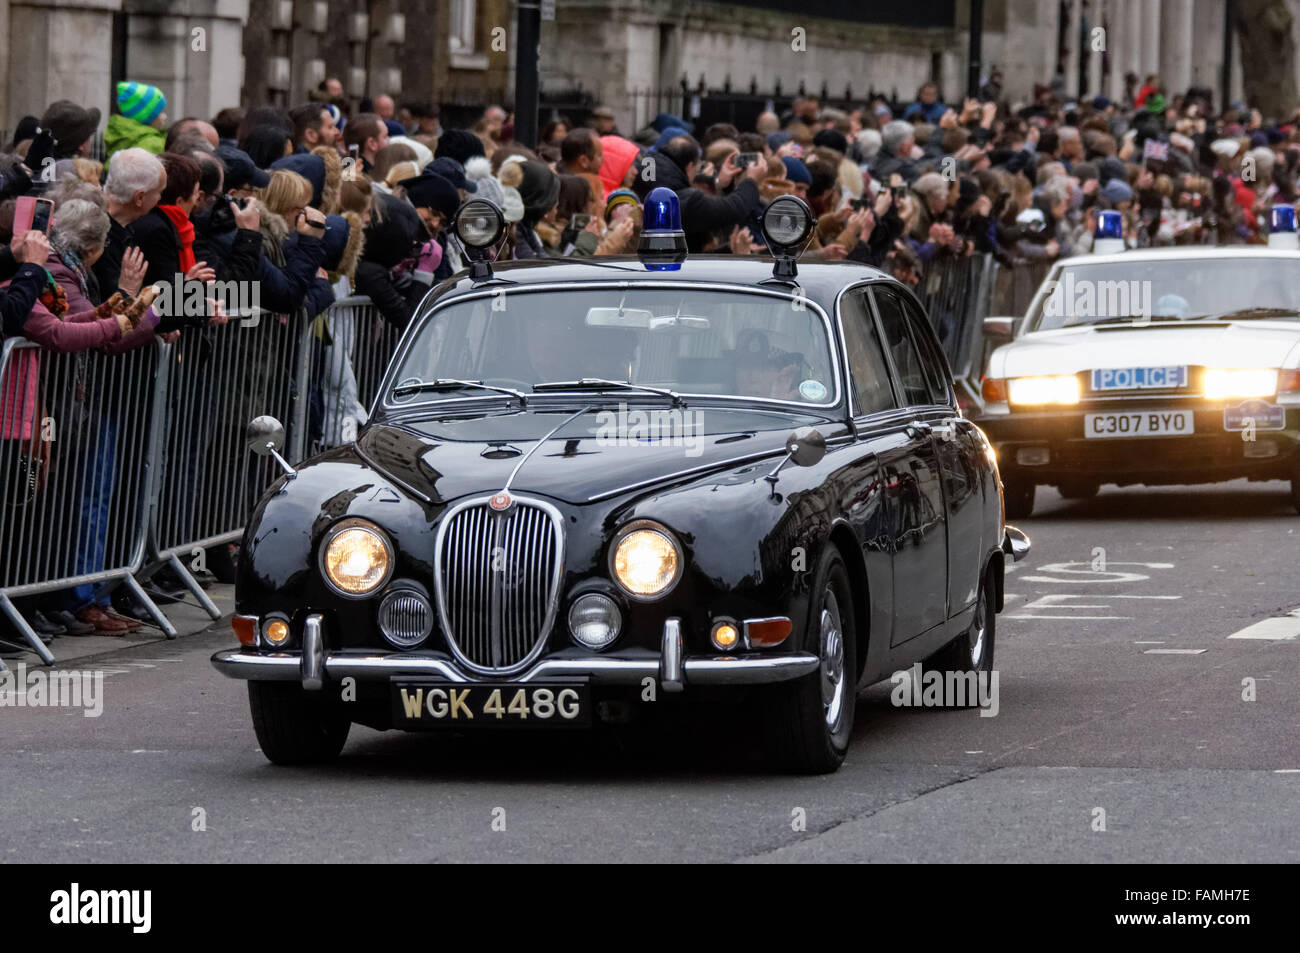 London, UK. 1st January, 2016. Old police cars at the London New ...